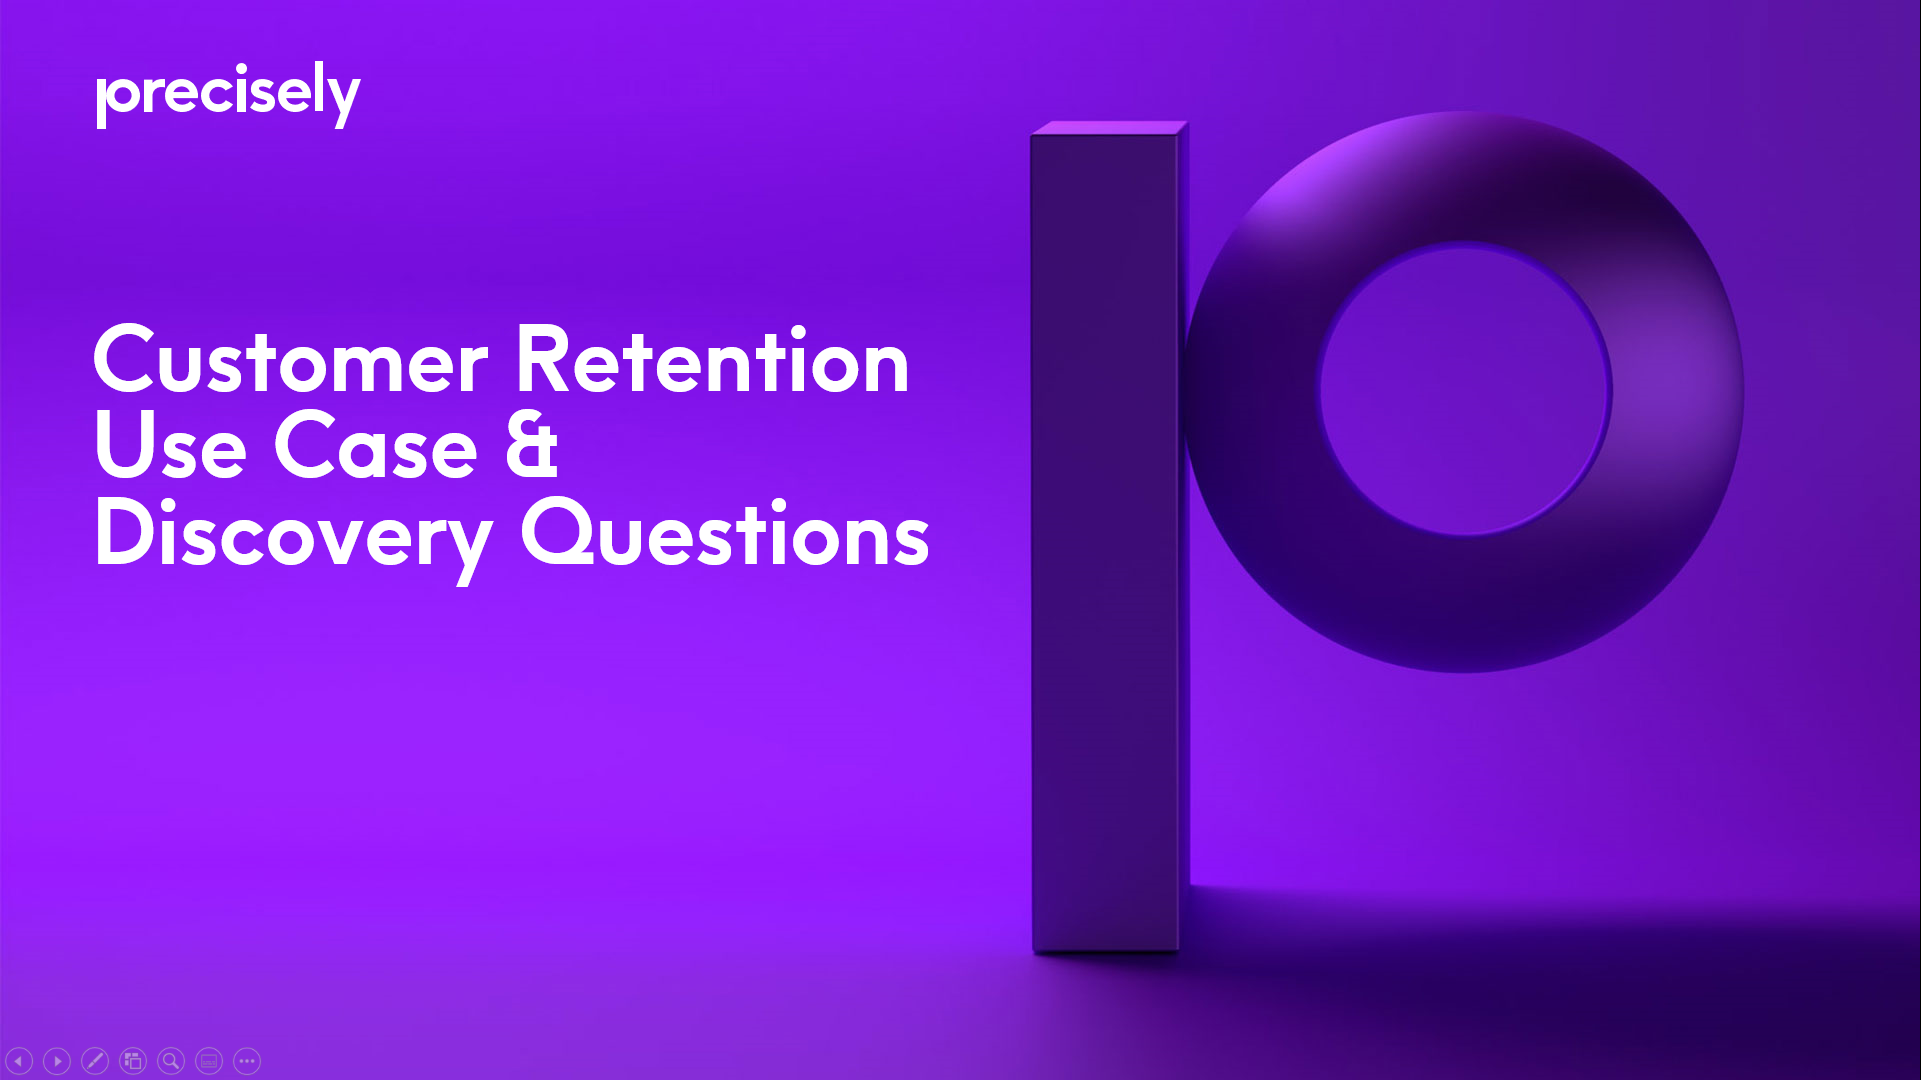 Customer Retention Use Case & Discovery Questions